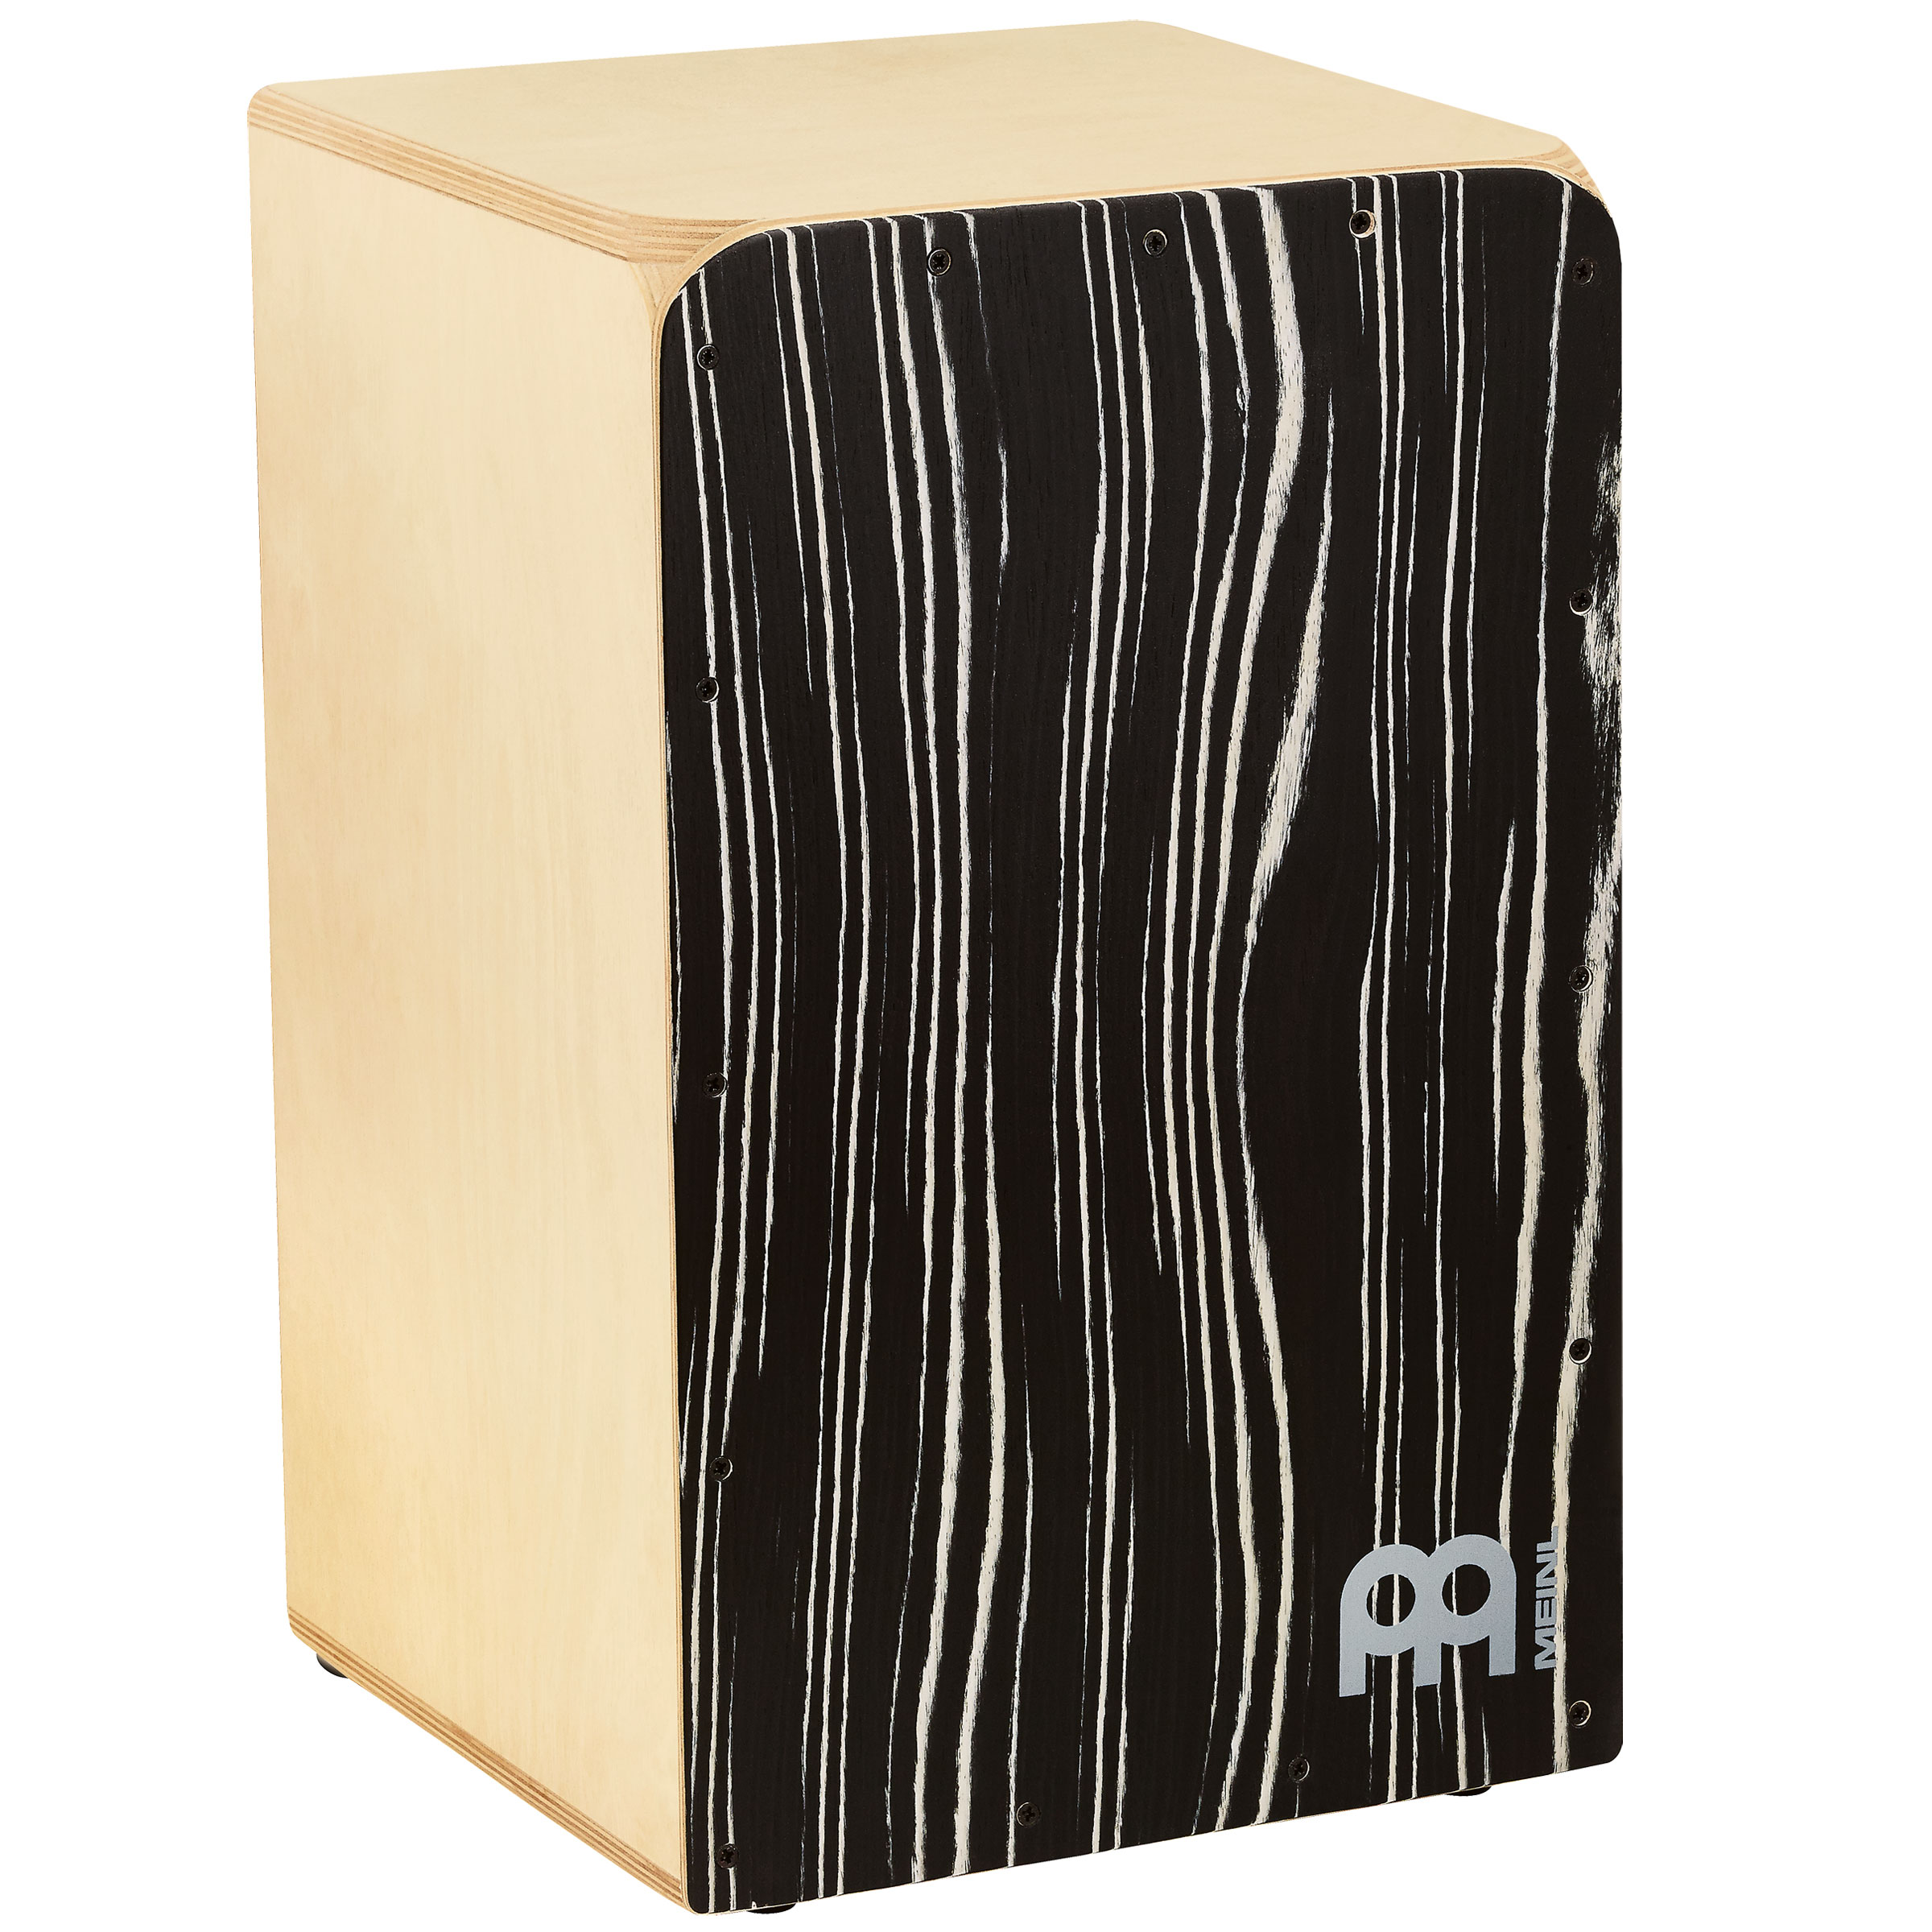 Meinl Woodcraft Cajon with Striped Onyx Frontplate